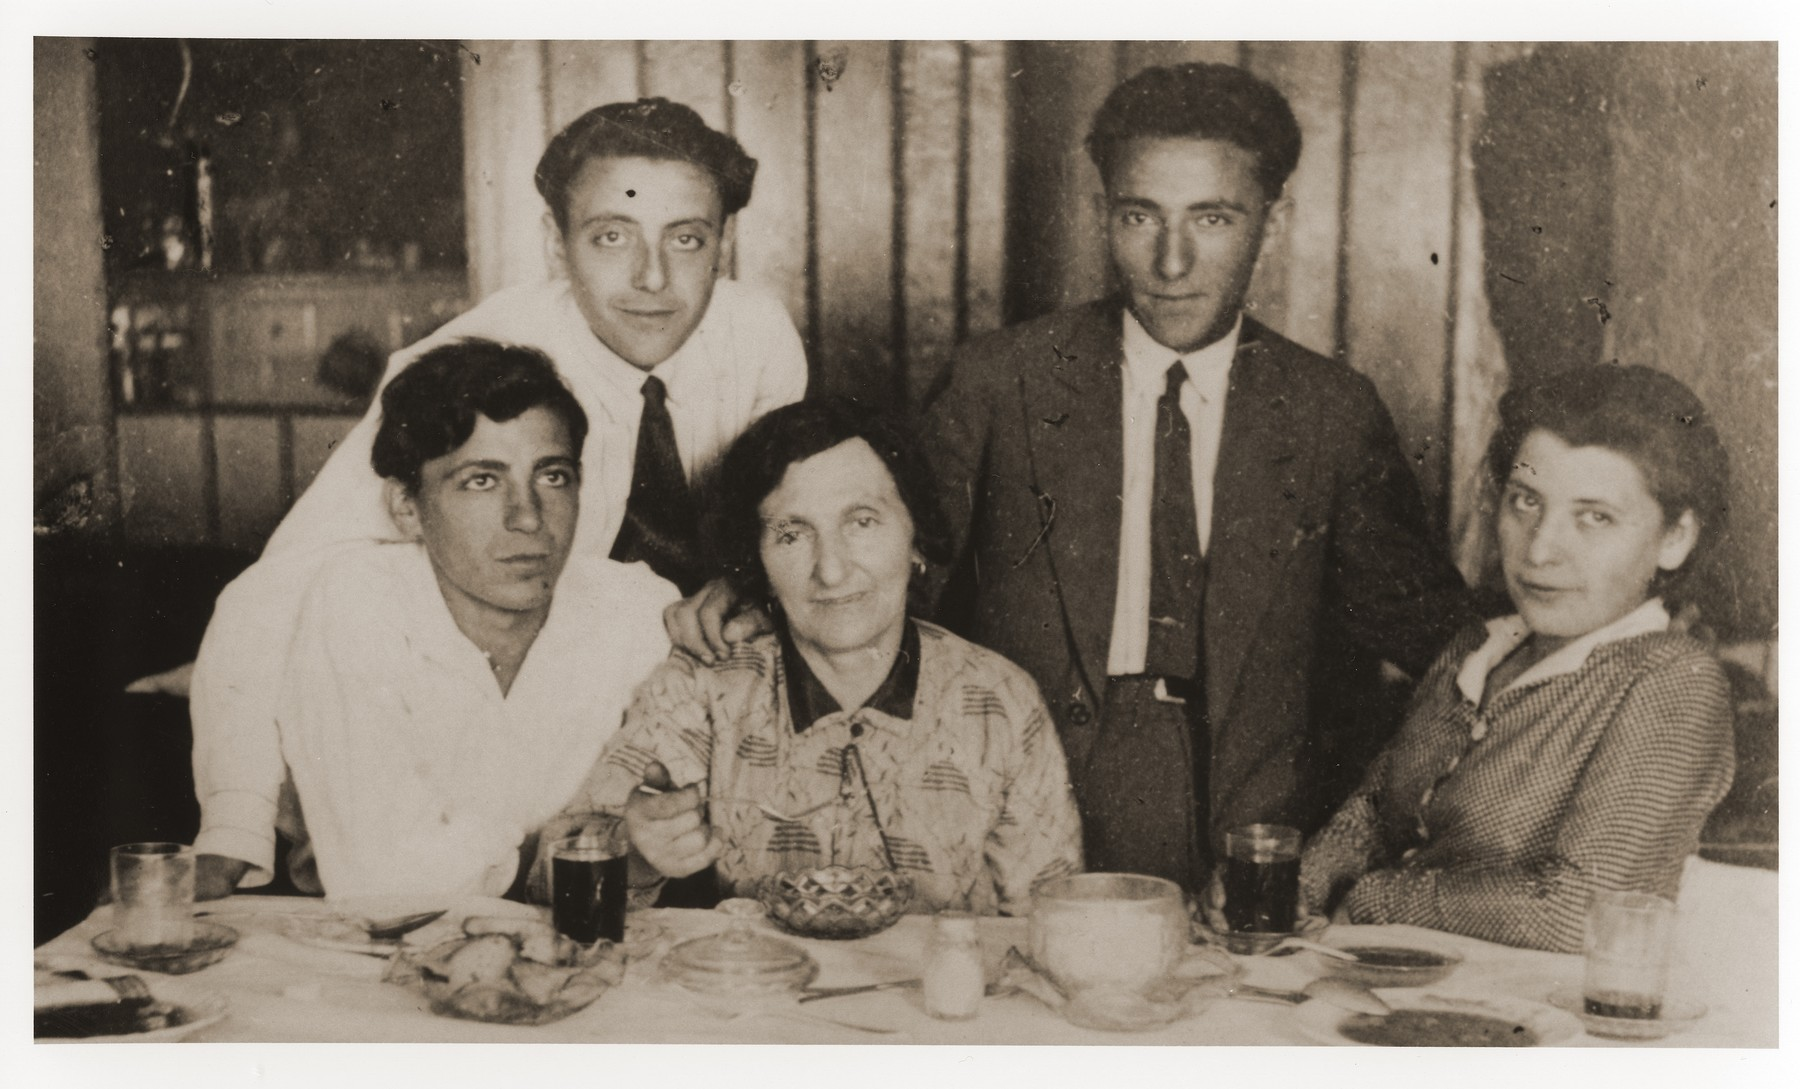 Members of the Zygielbojm family pose at the dinner table.  Pictured standing behind, from left to right, are: Avraham and Faivel Zygielbojm.  Seated, from left to right, are: Reuven; Henia, and Hava Zygielbojm.